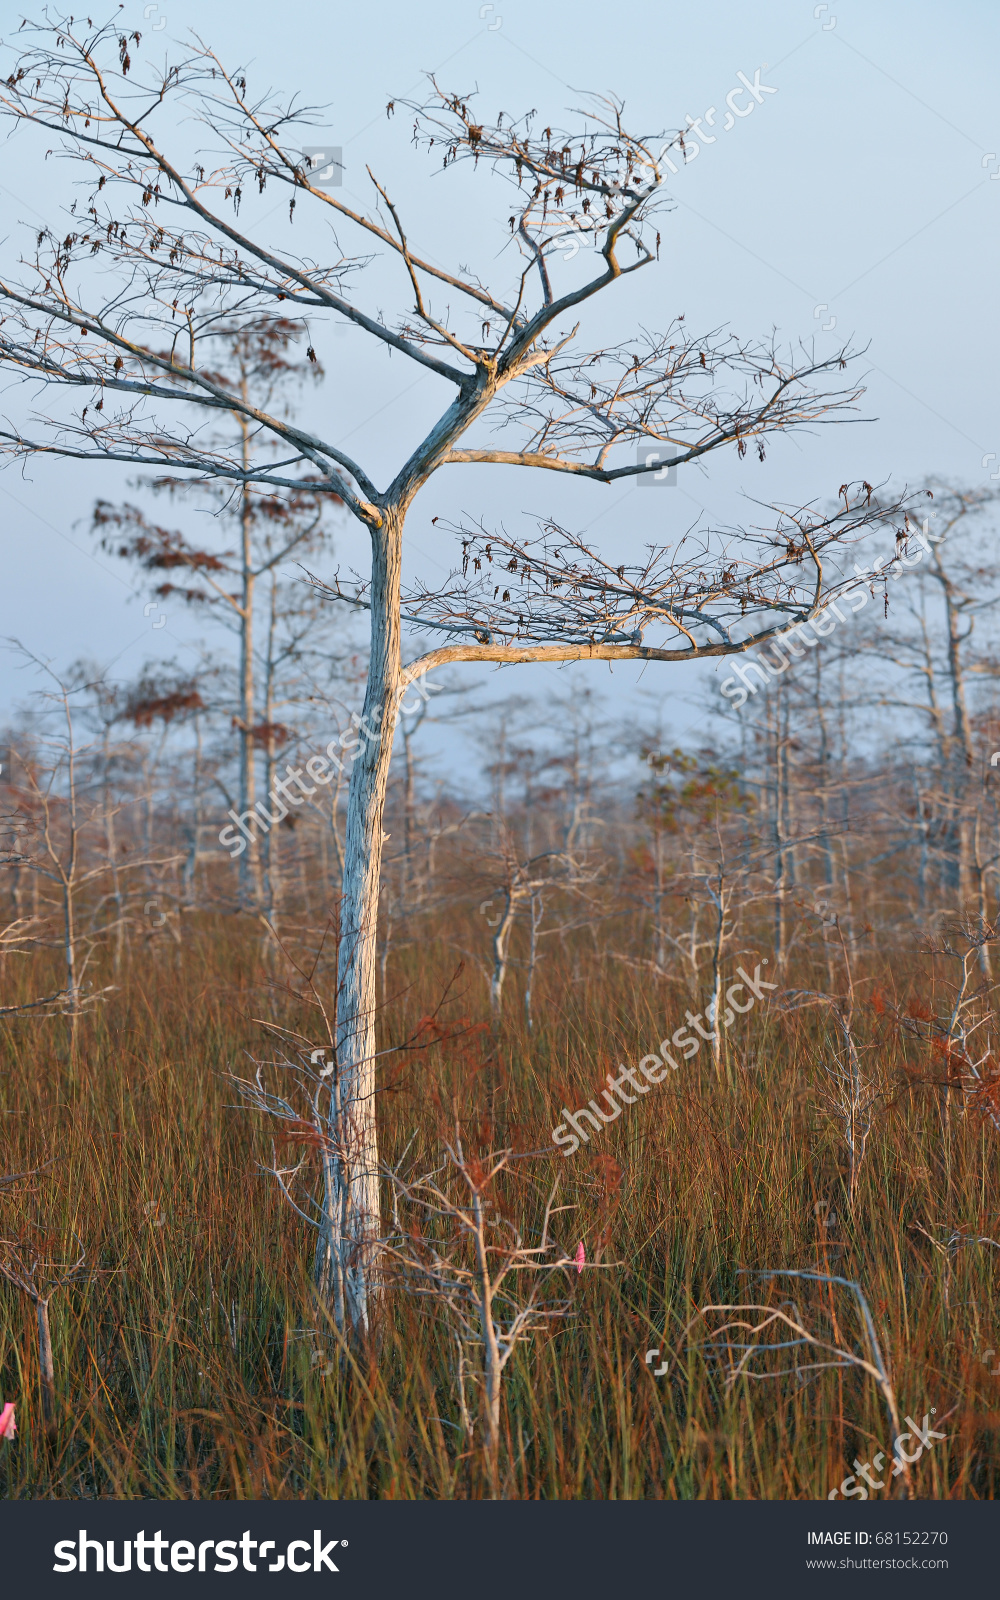 Dwarf Cypress Tree In Winter Dormancy At Florida'S Everglades.